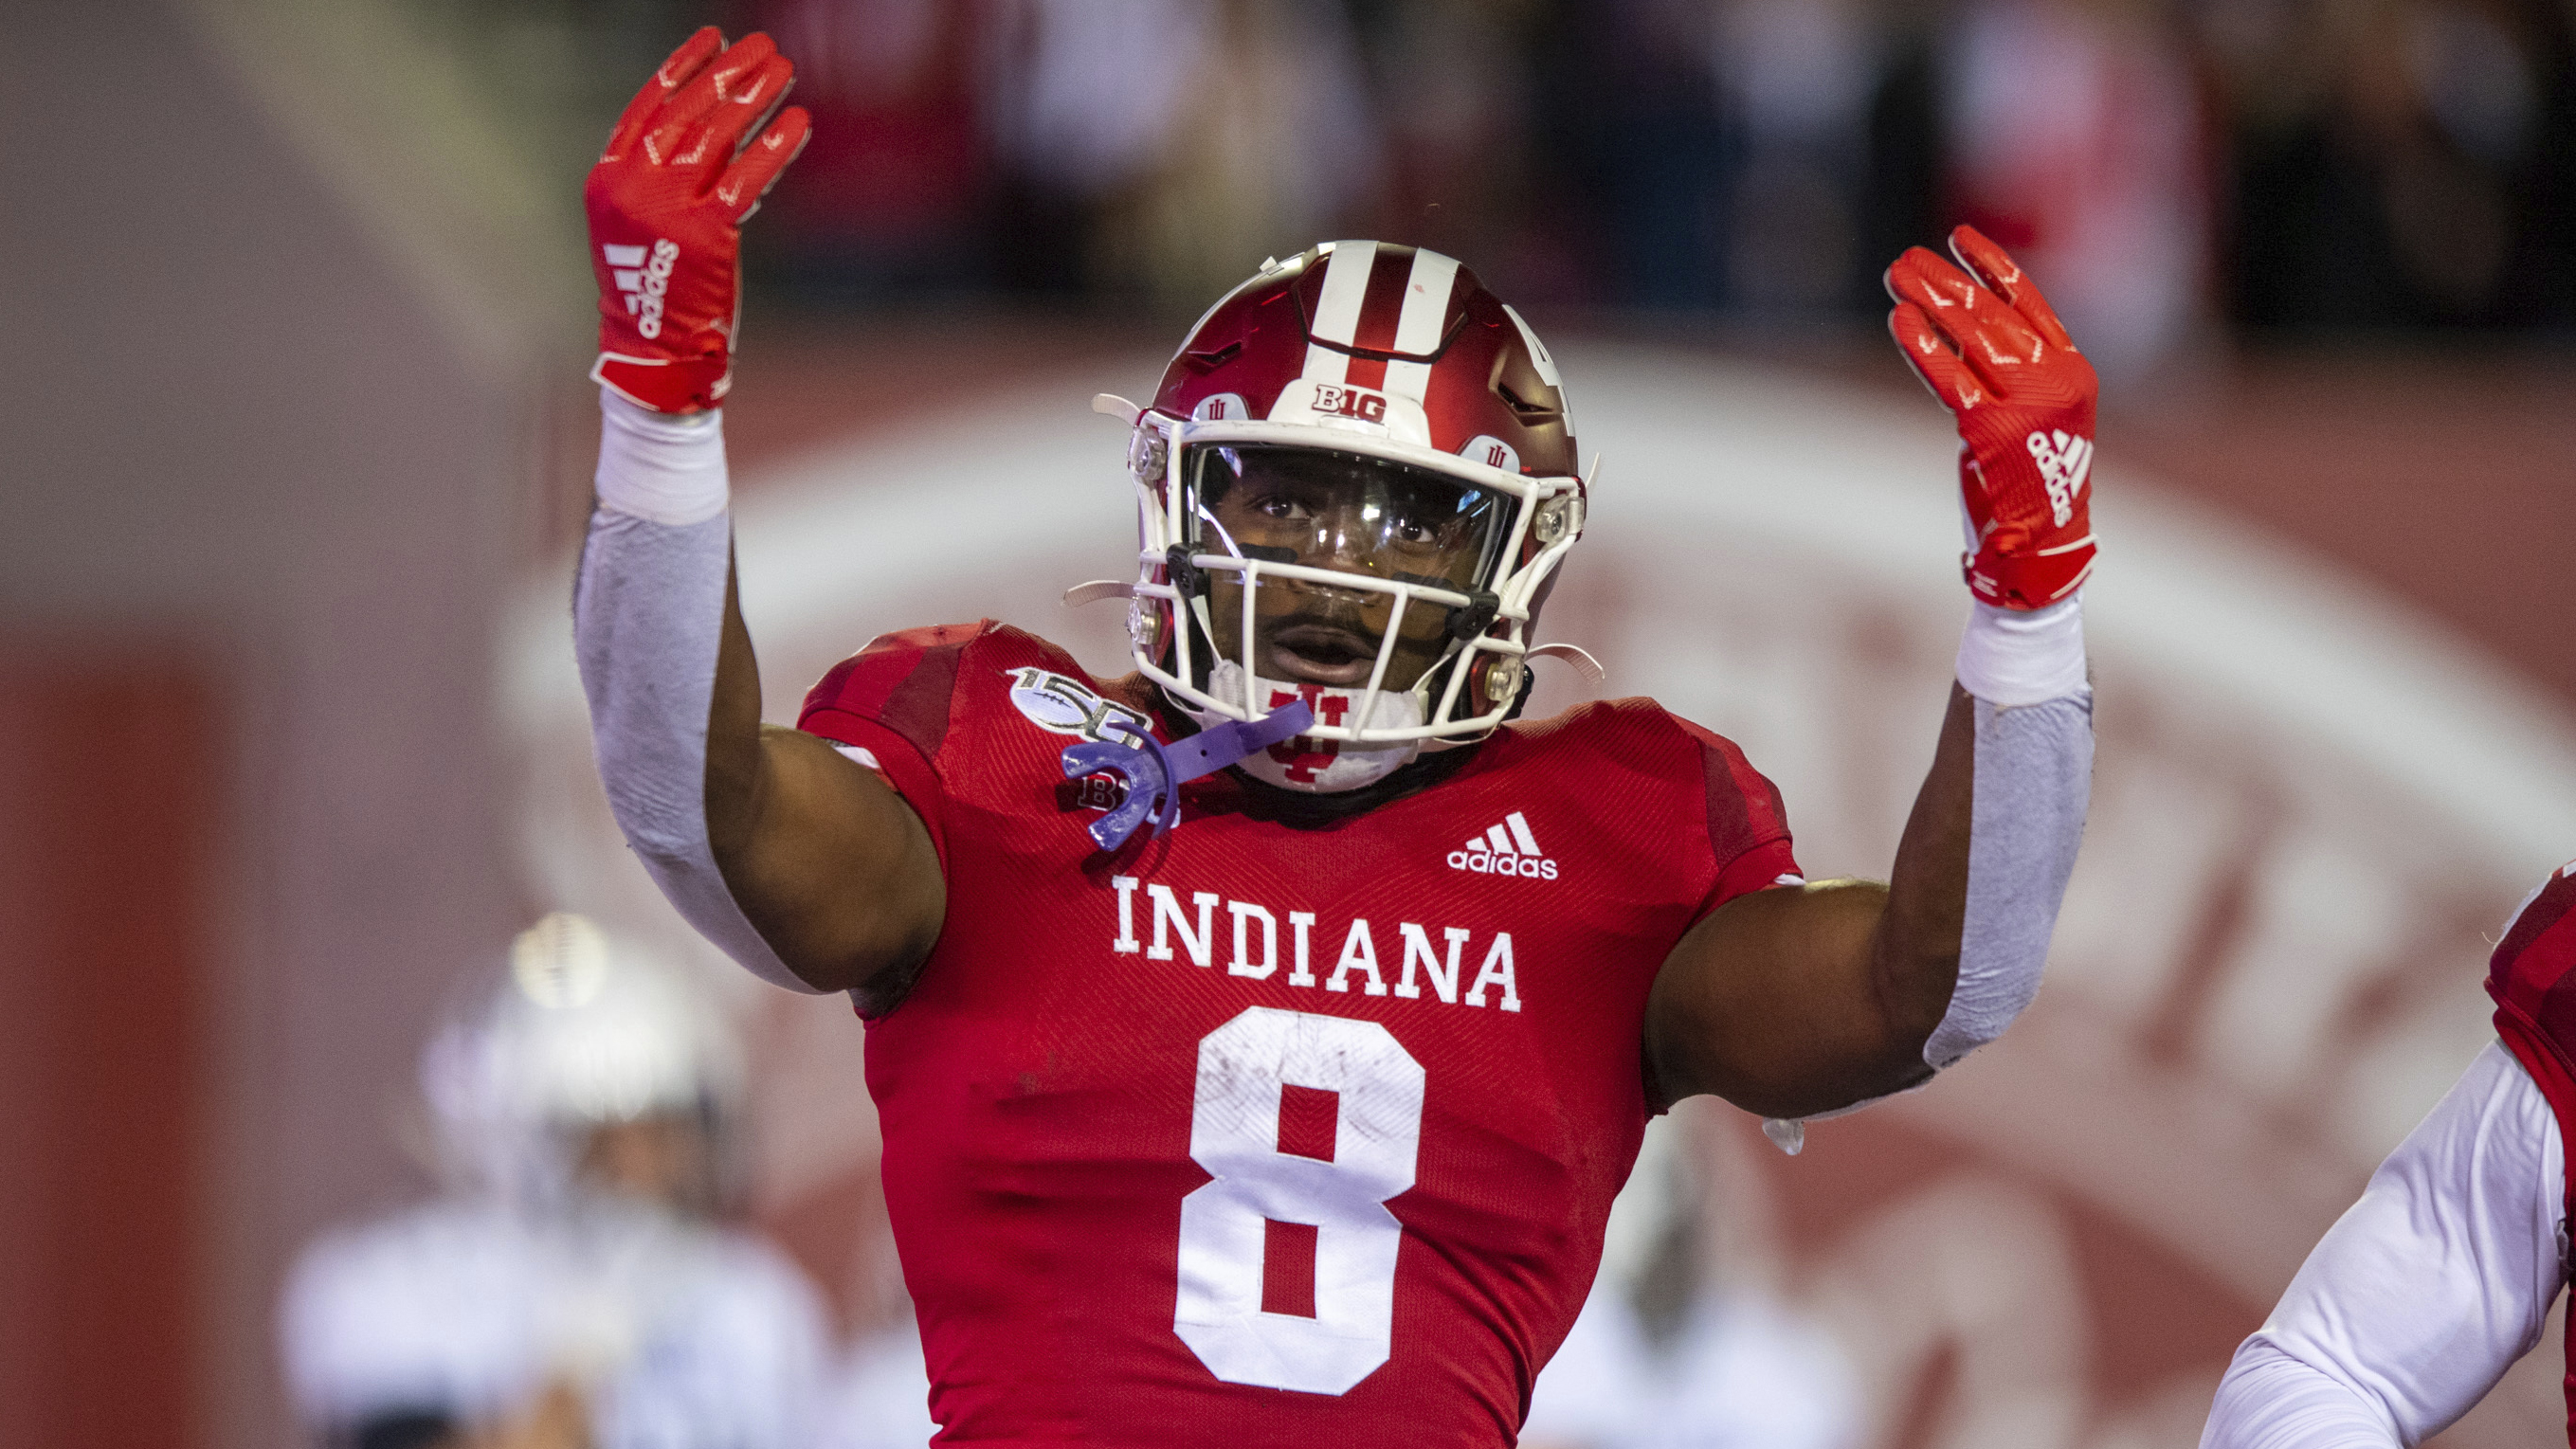 Indiana cruises to 34-3 win behind Stevie Scott's strong night